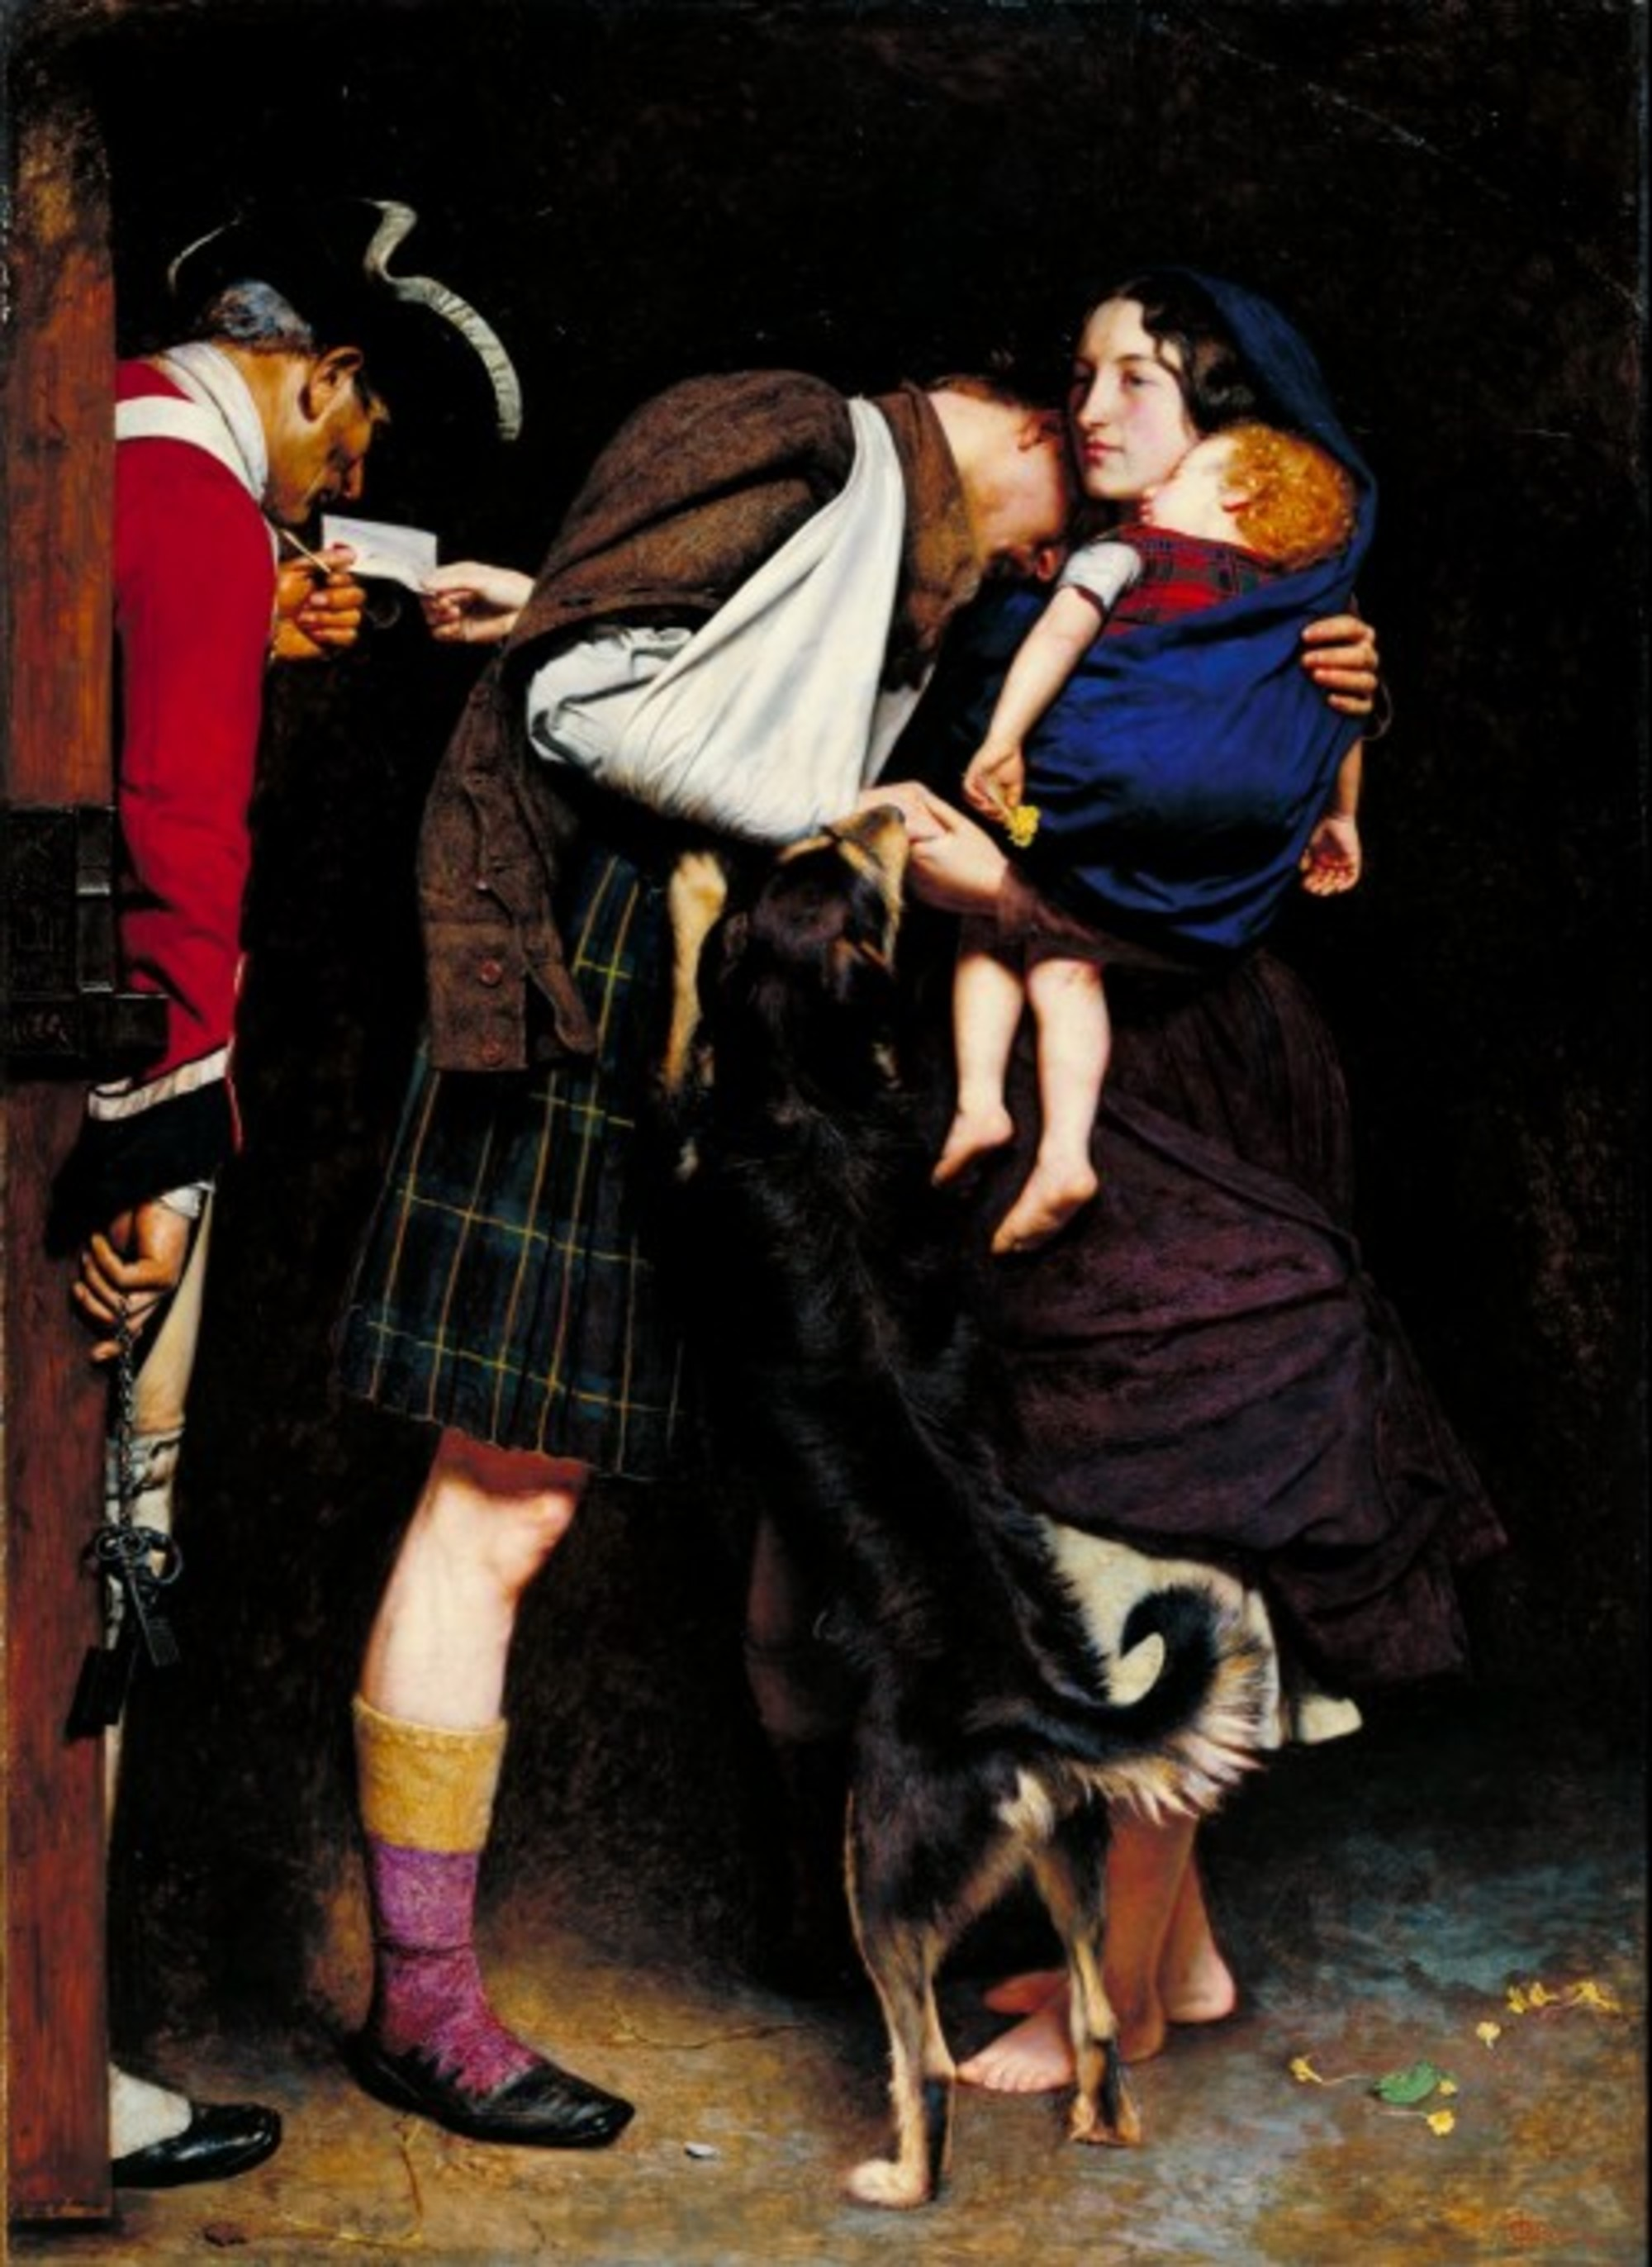 Sir-John-Everett-Millais---The-Order-of-Release-1746-Tate-Britain.jpg